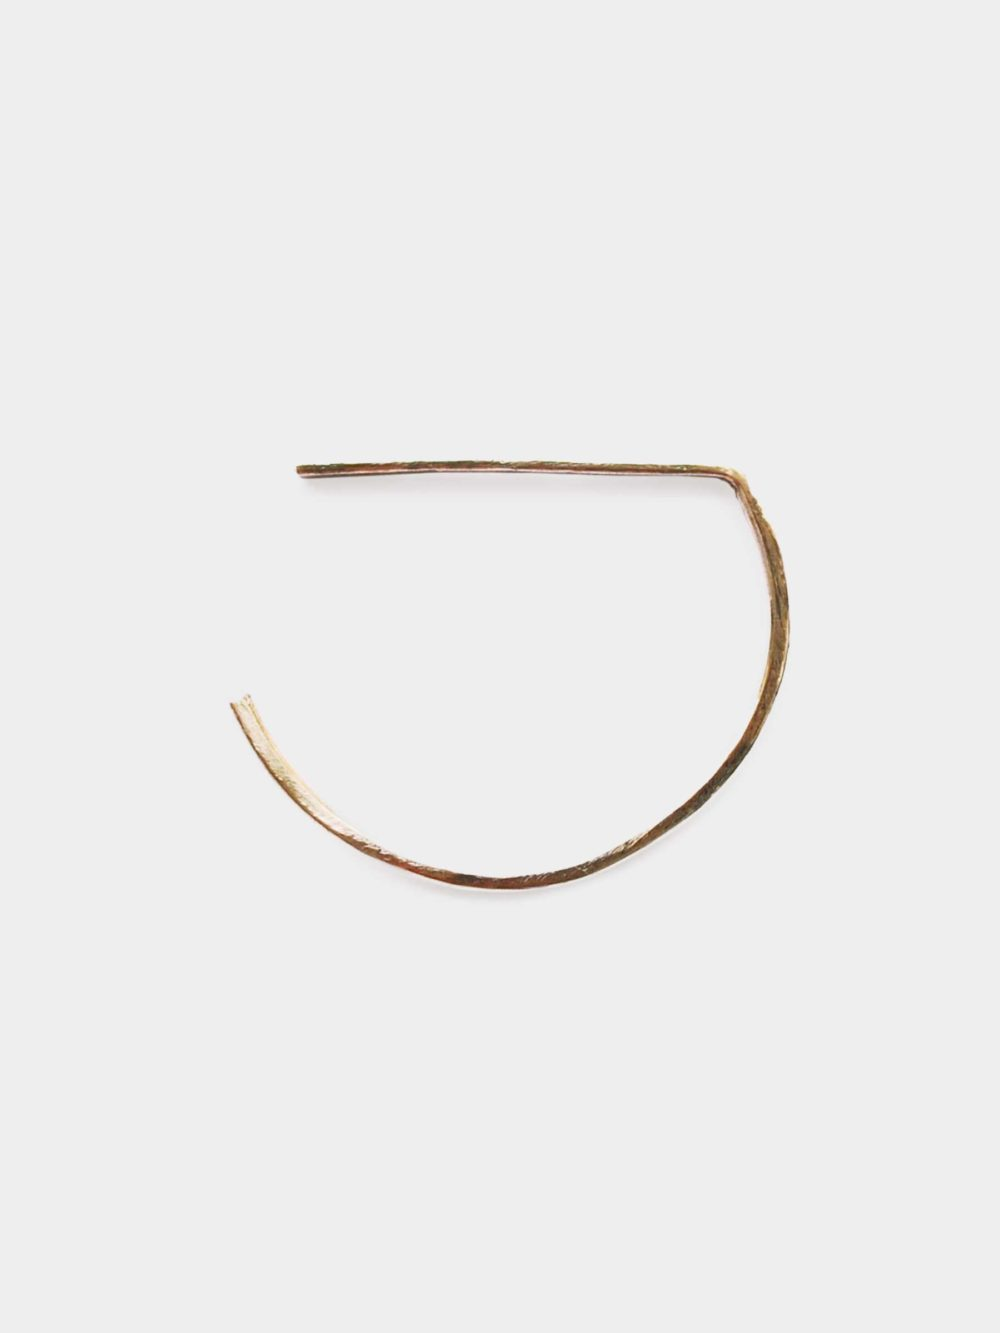 THE MAMA KIN FLAT BANGLE Hand made in the studio in Hungary, the simple Flat bangle from Parallel collection is created of one piece of curved line to achieve playful yet minimal look.